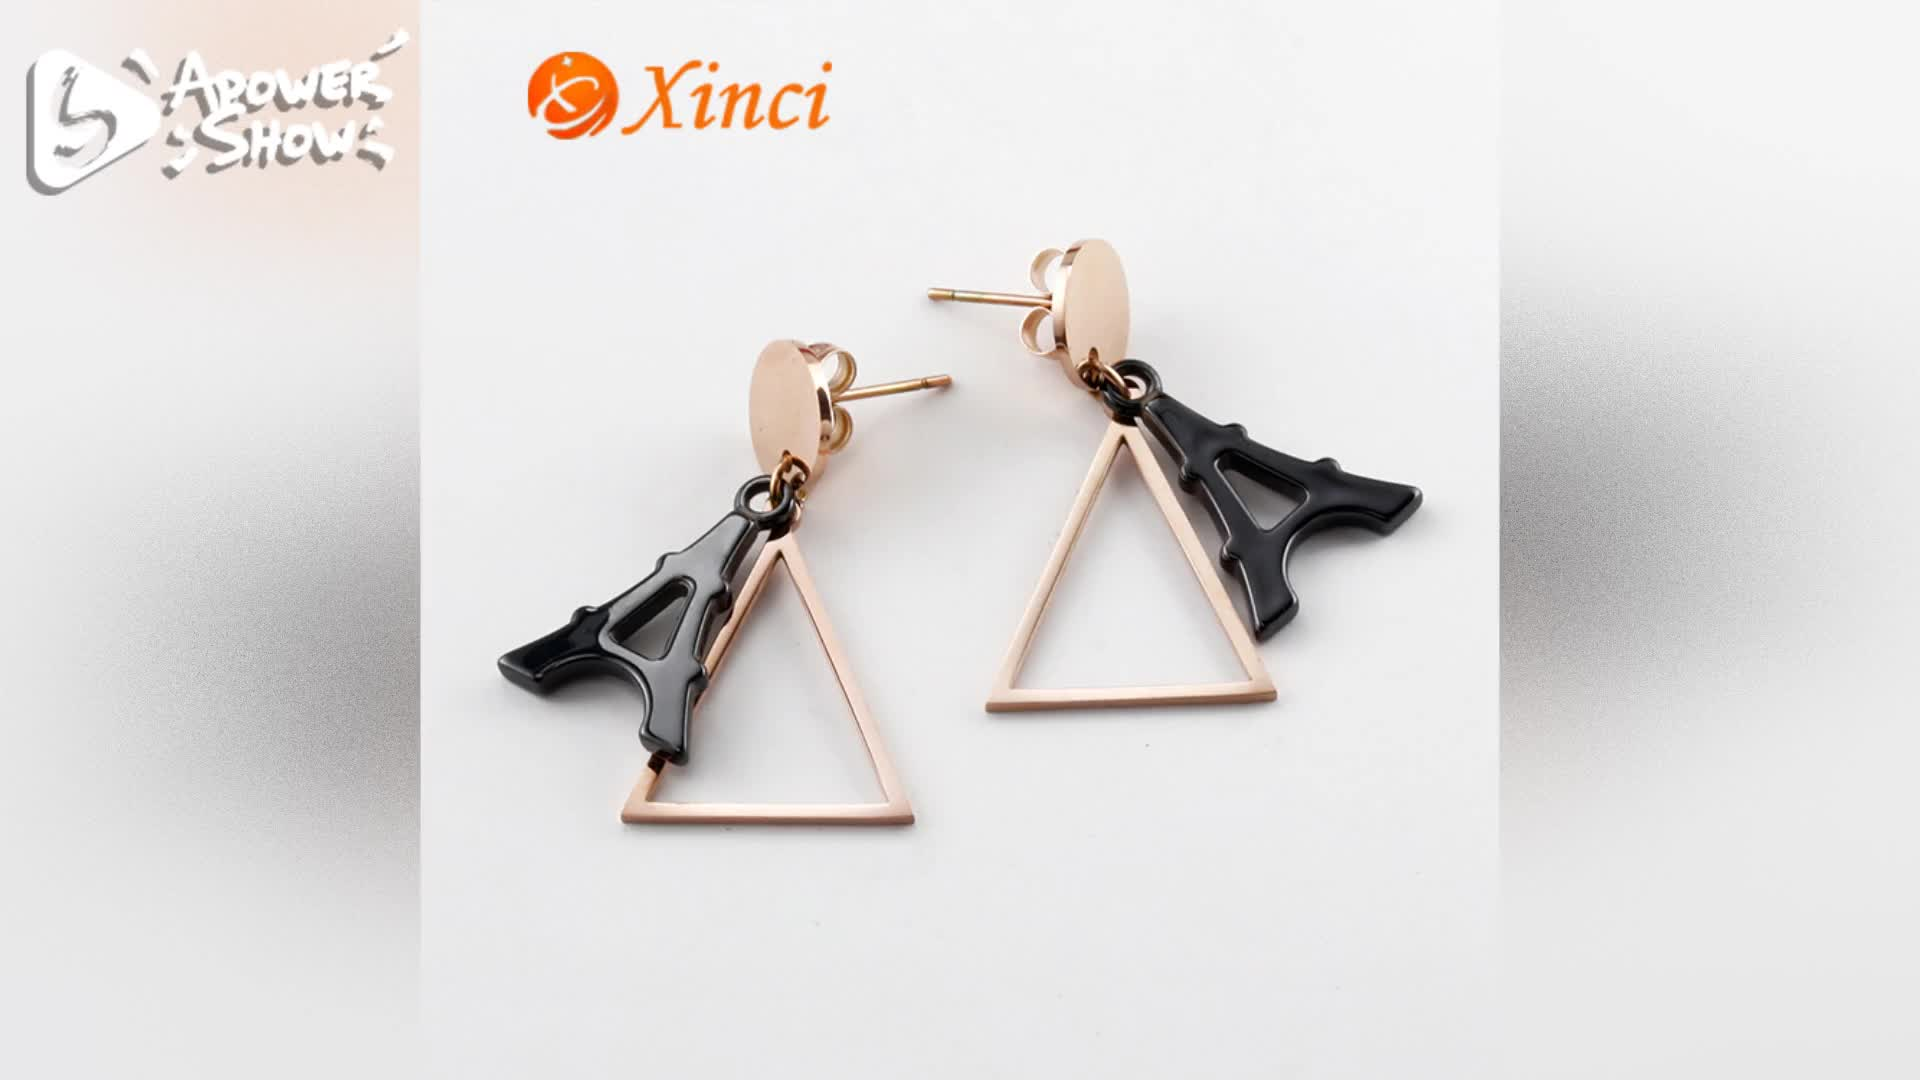 White and Black Ceramic Pendant Stainless Steel Leaf Earring Wedding Jewelry Set Gold Plated Jewelry